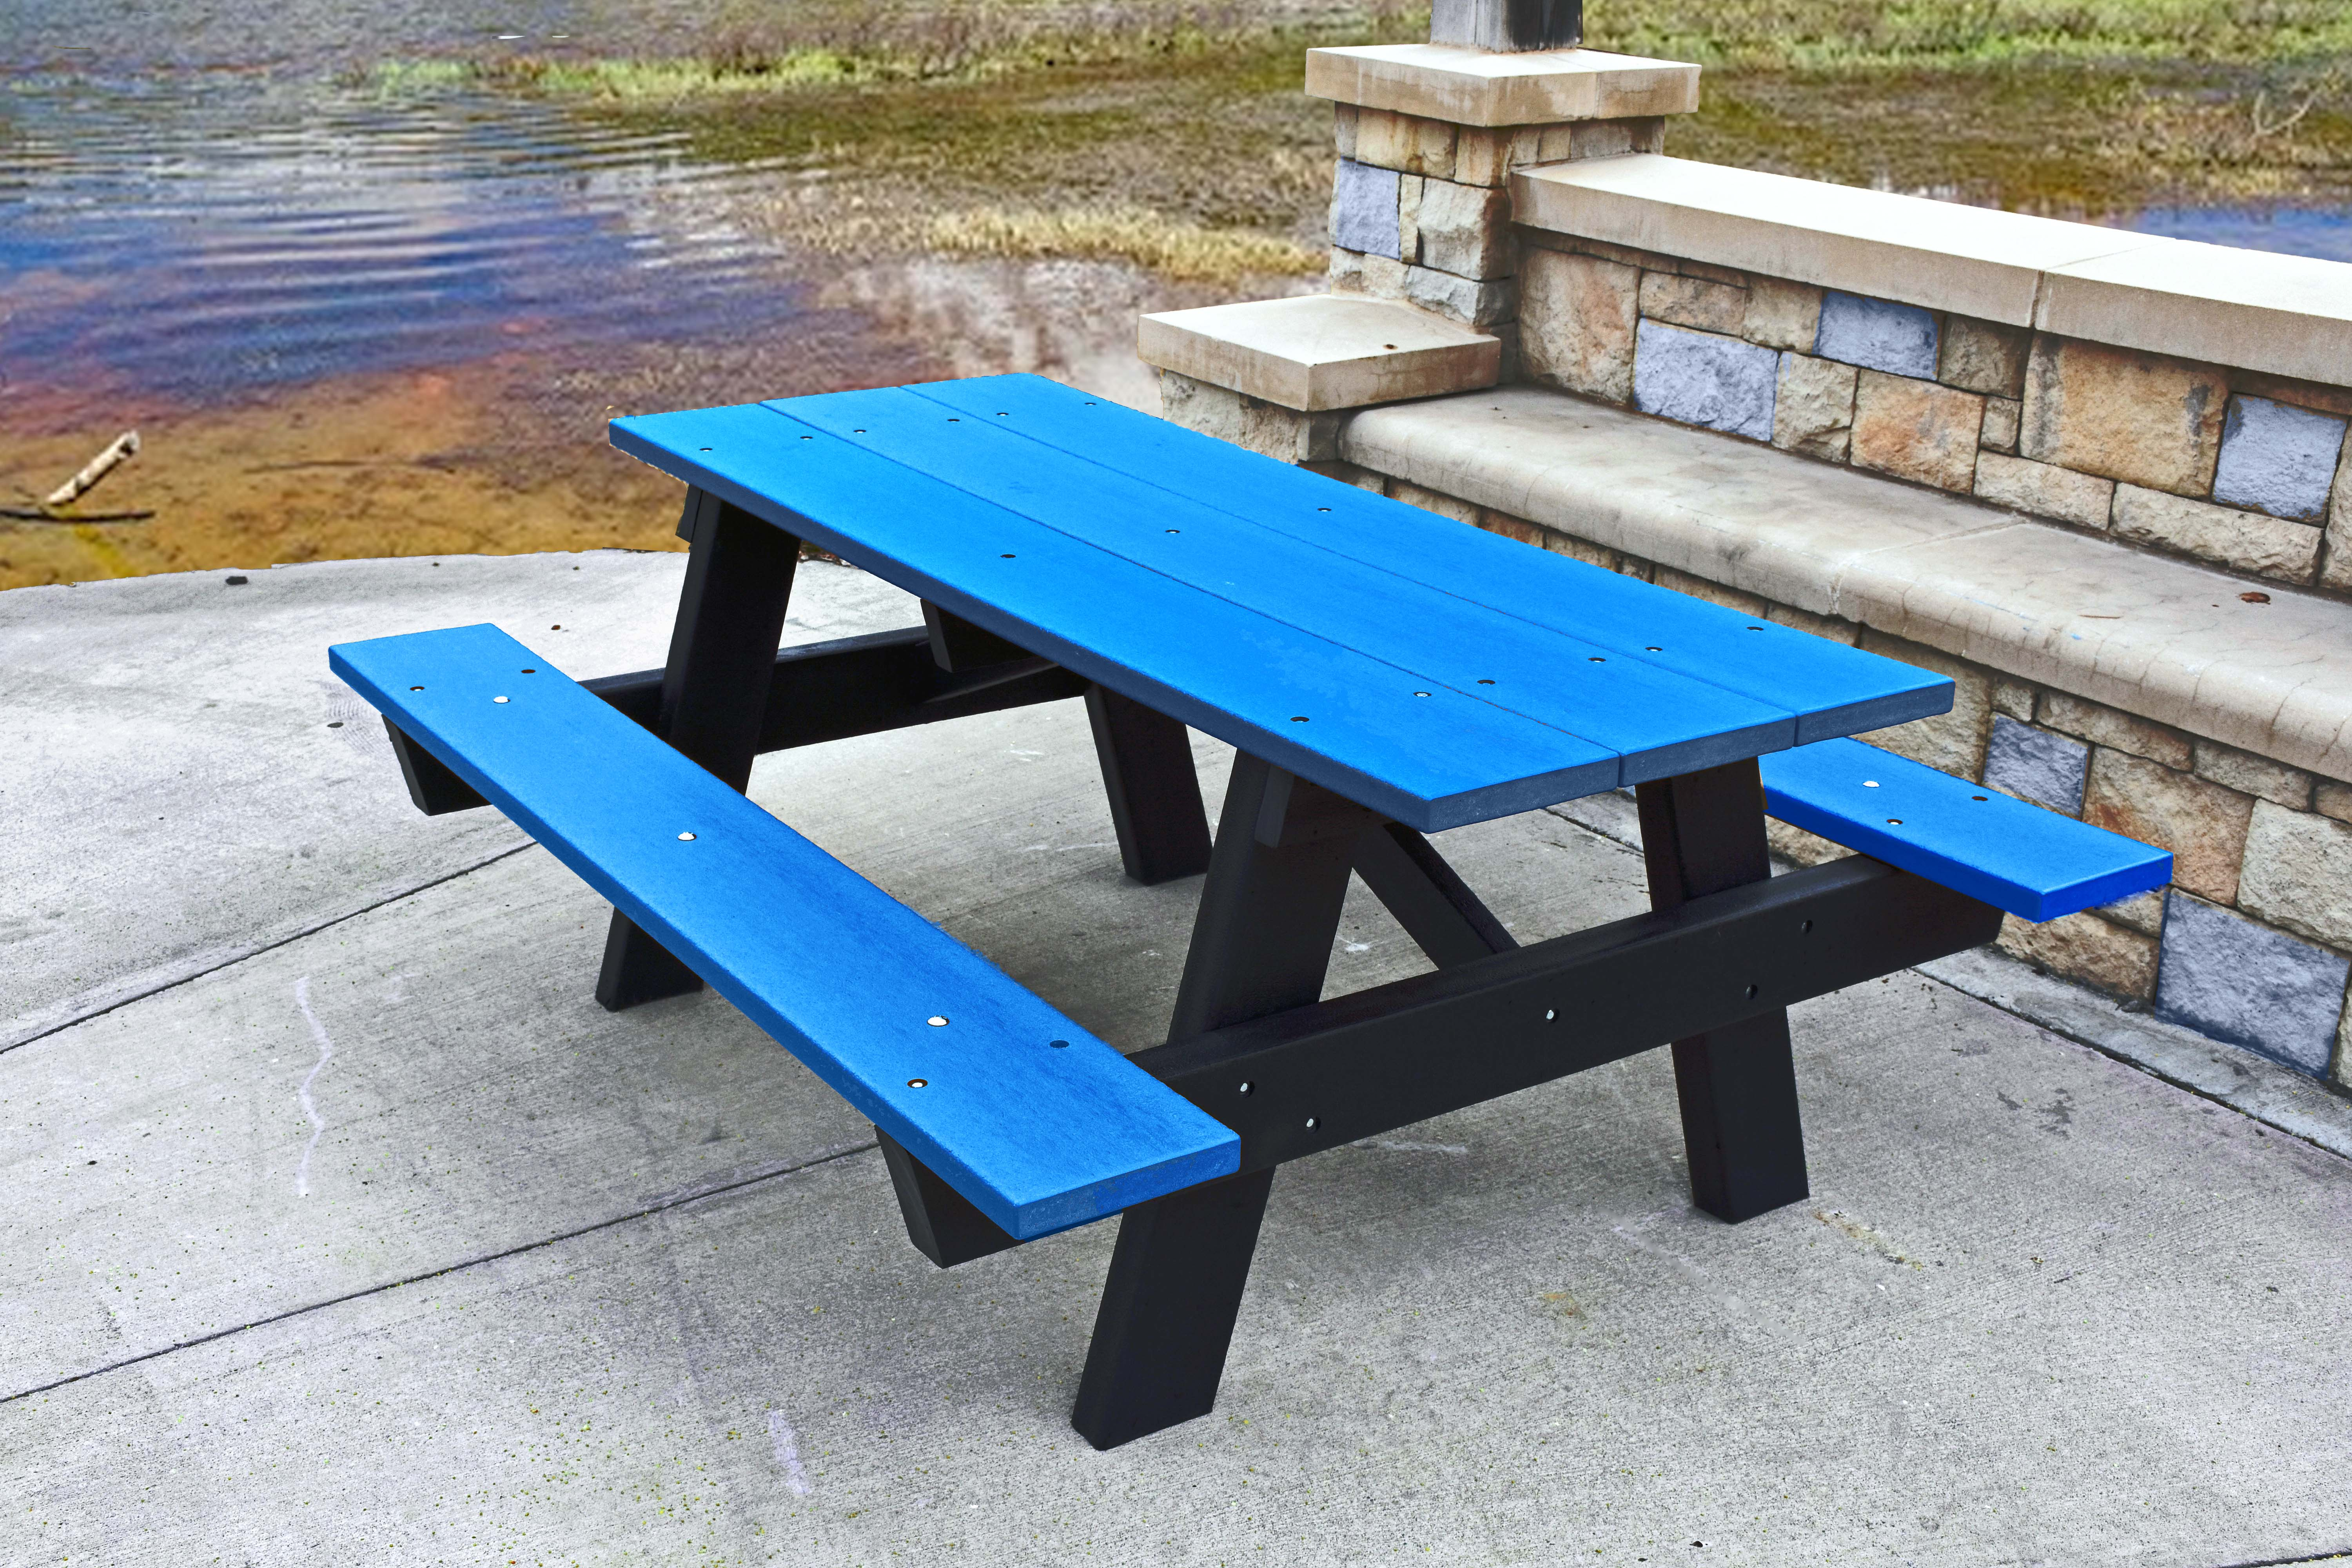 Picnic Tables Playground Equipment For Commercial School - Tubular picnic table frame